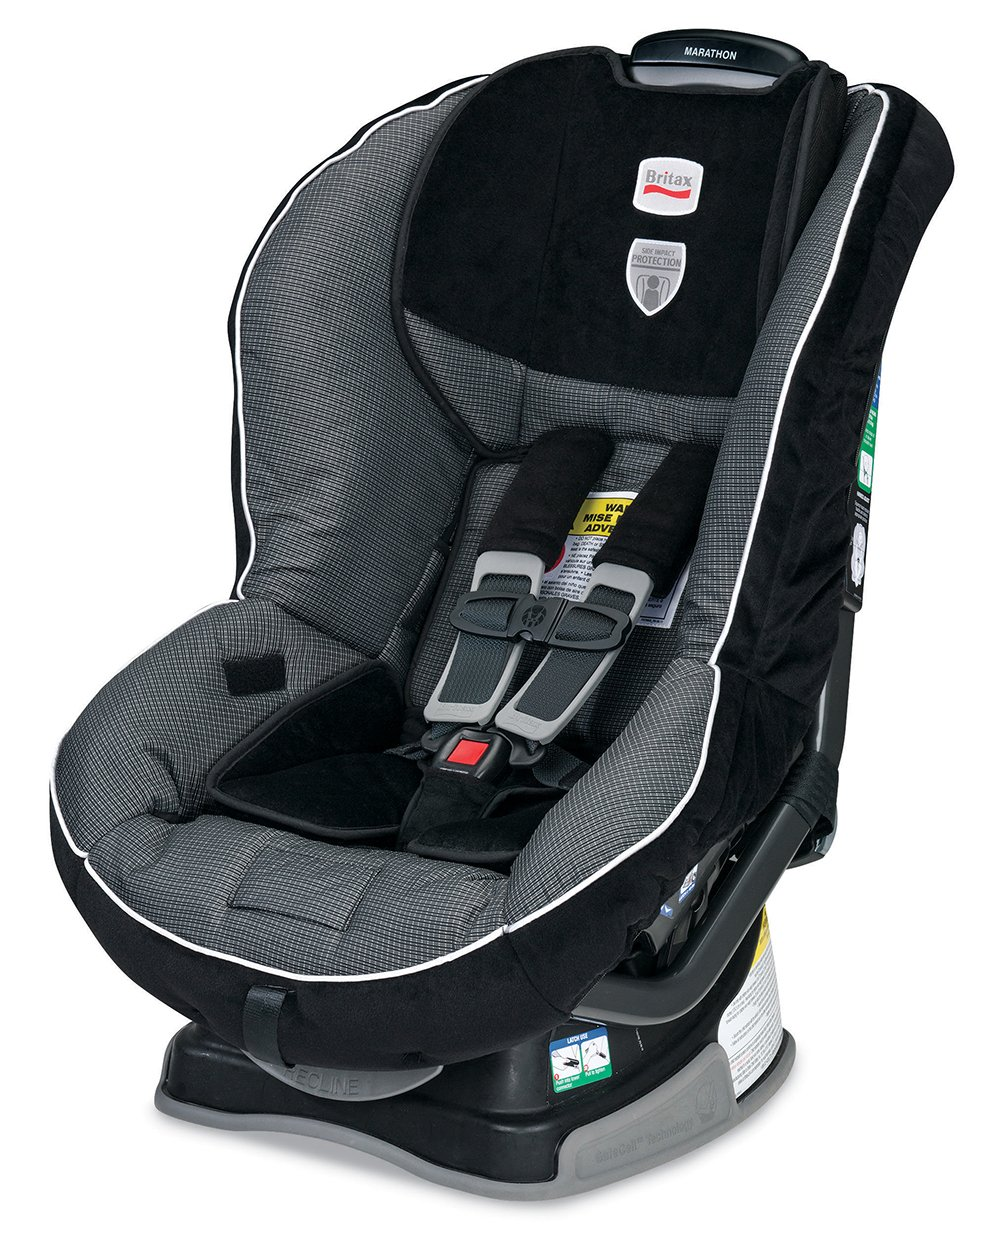 britax boulevard 70 user manual basic instruction manual u2022 rh ryanshtuff co  britax boulevard 70 cs user manual